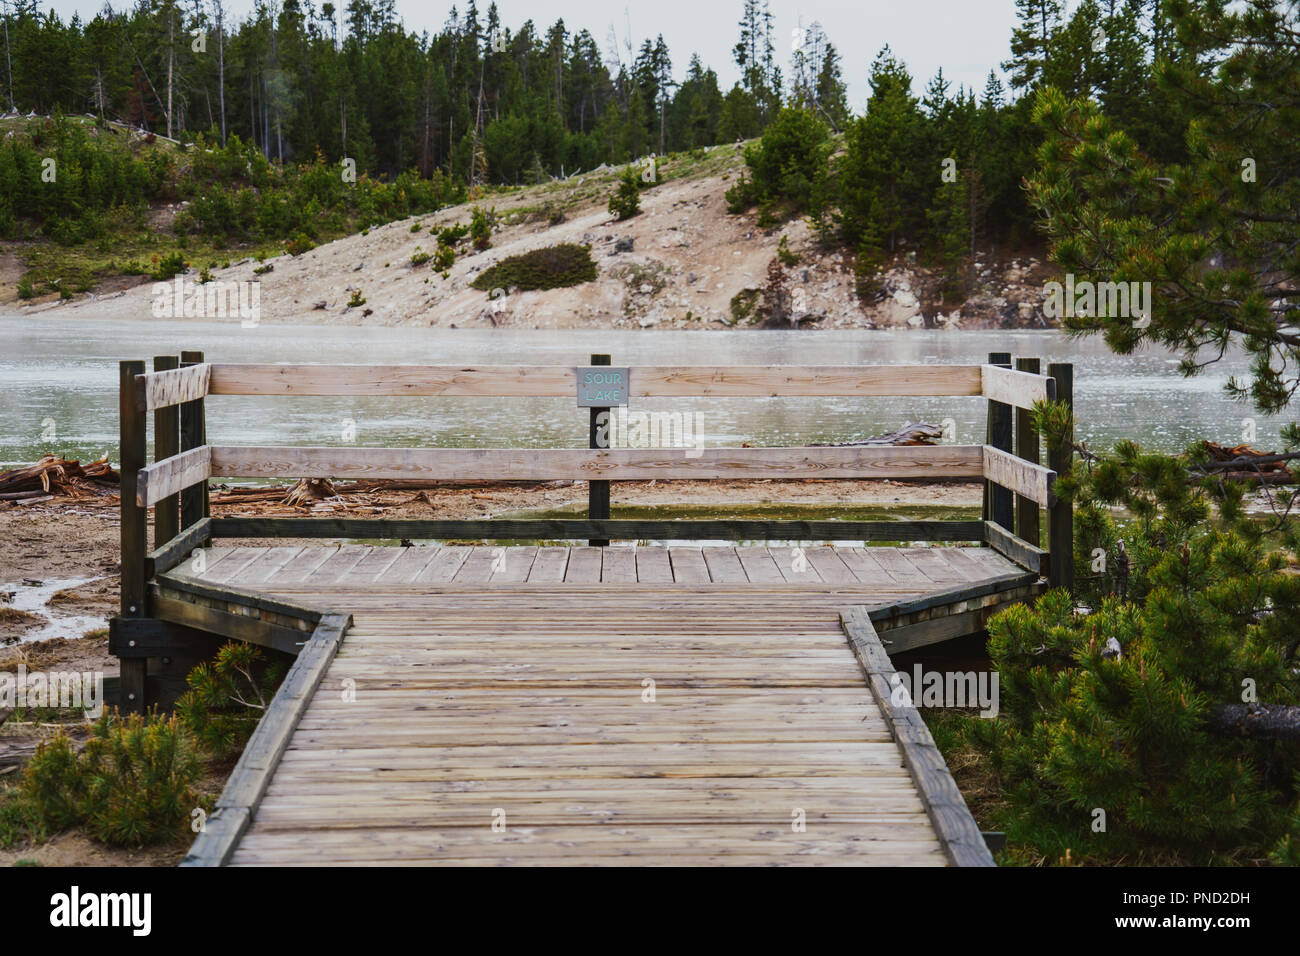 Boardwalk and viewing platform at Sour Lake, a geothermal feature in Yellowstone National Park - Stock Image